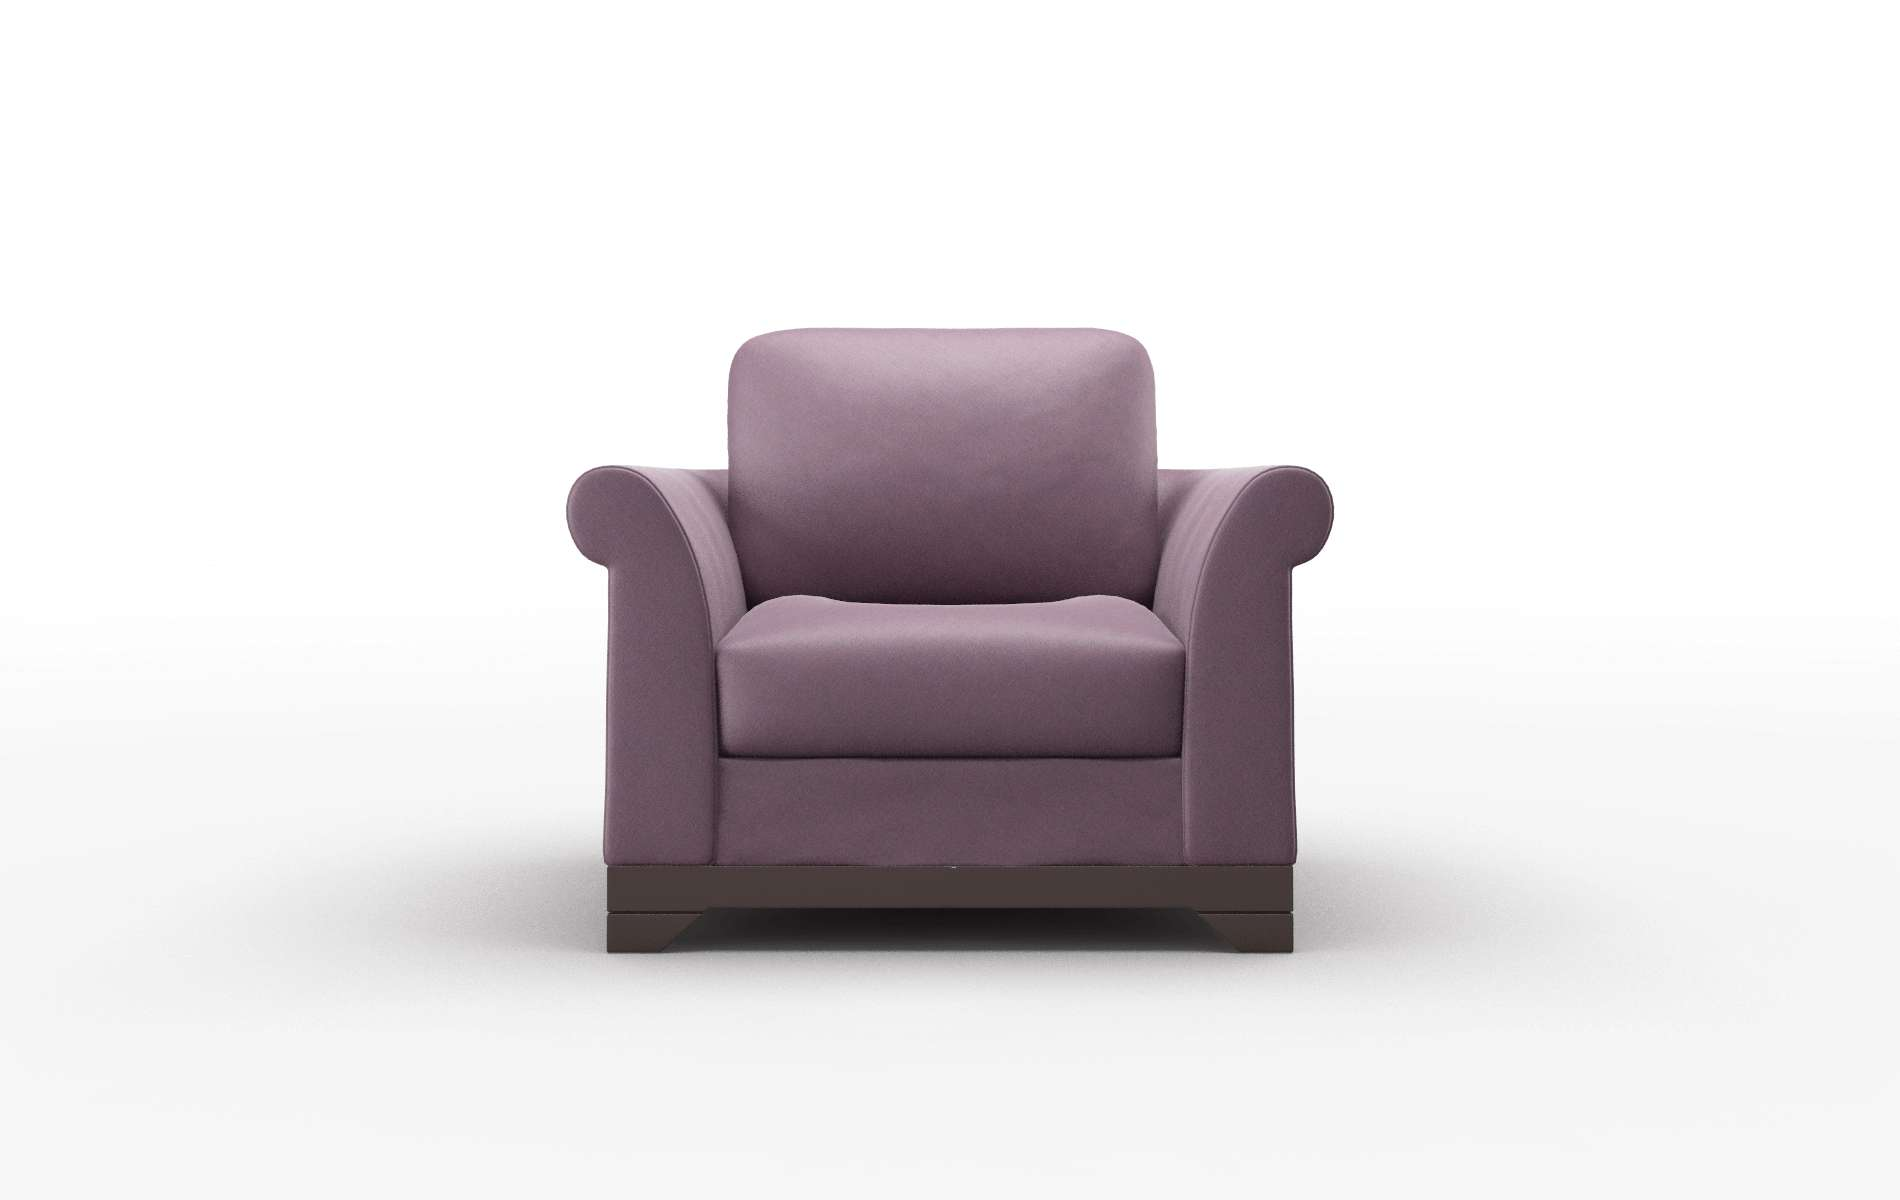 Denver Bella Aubergine Chair espresso legs 1